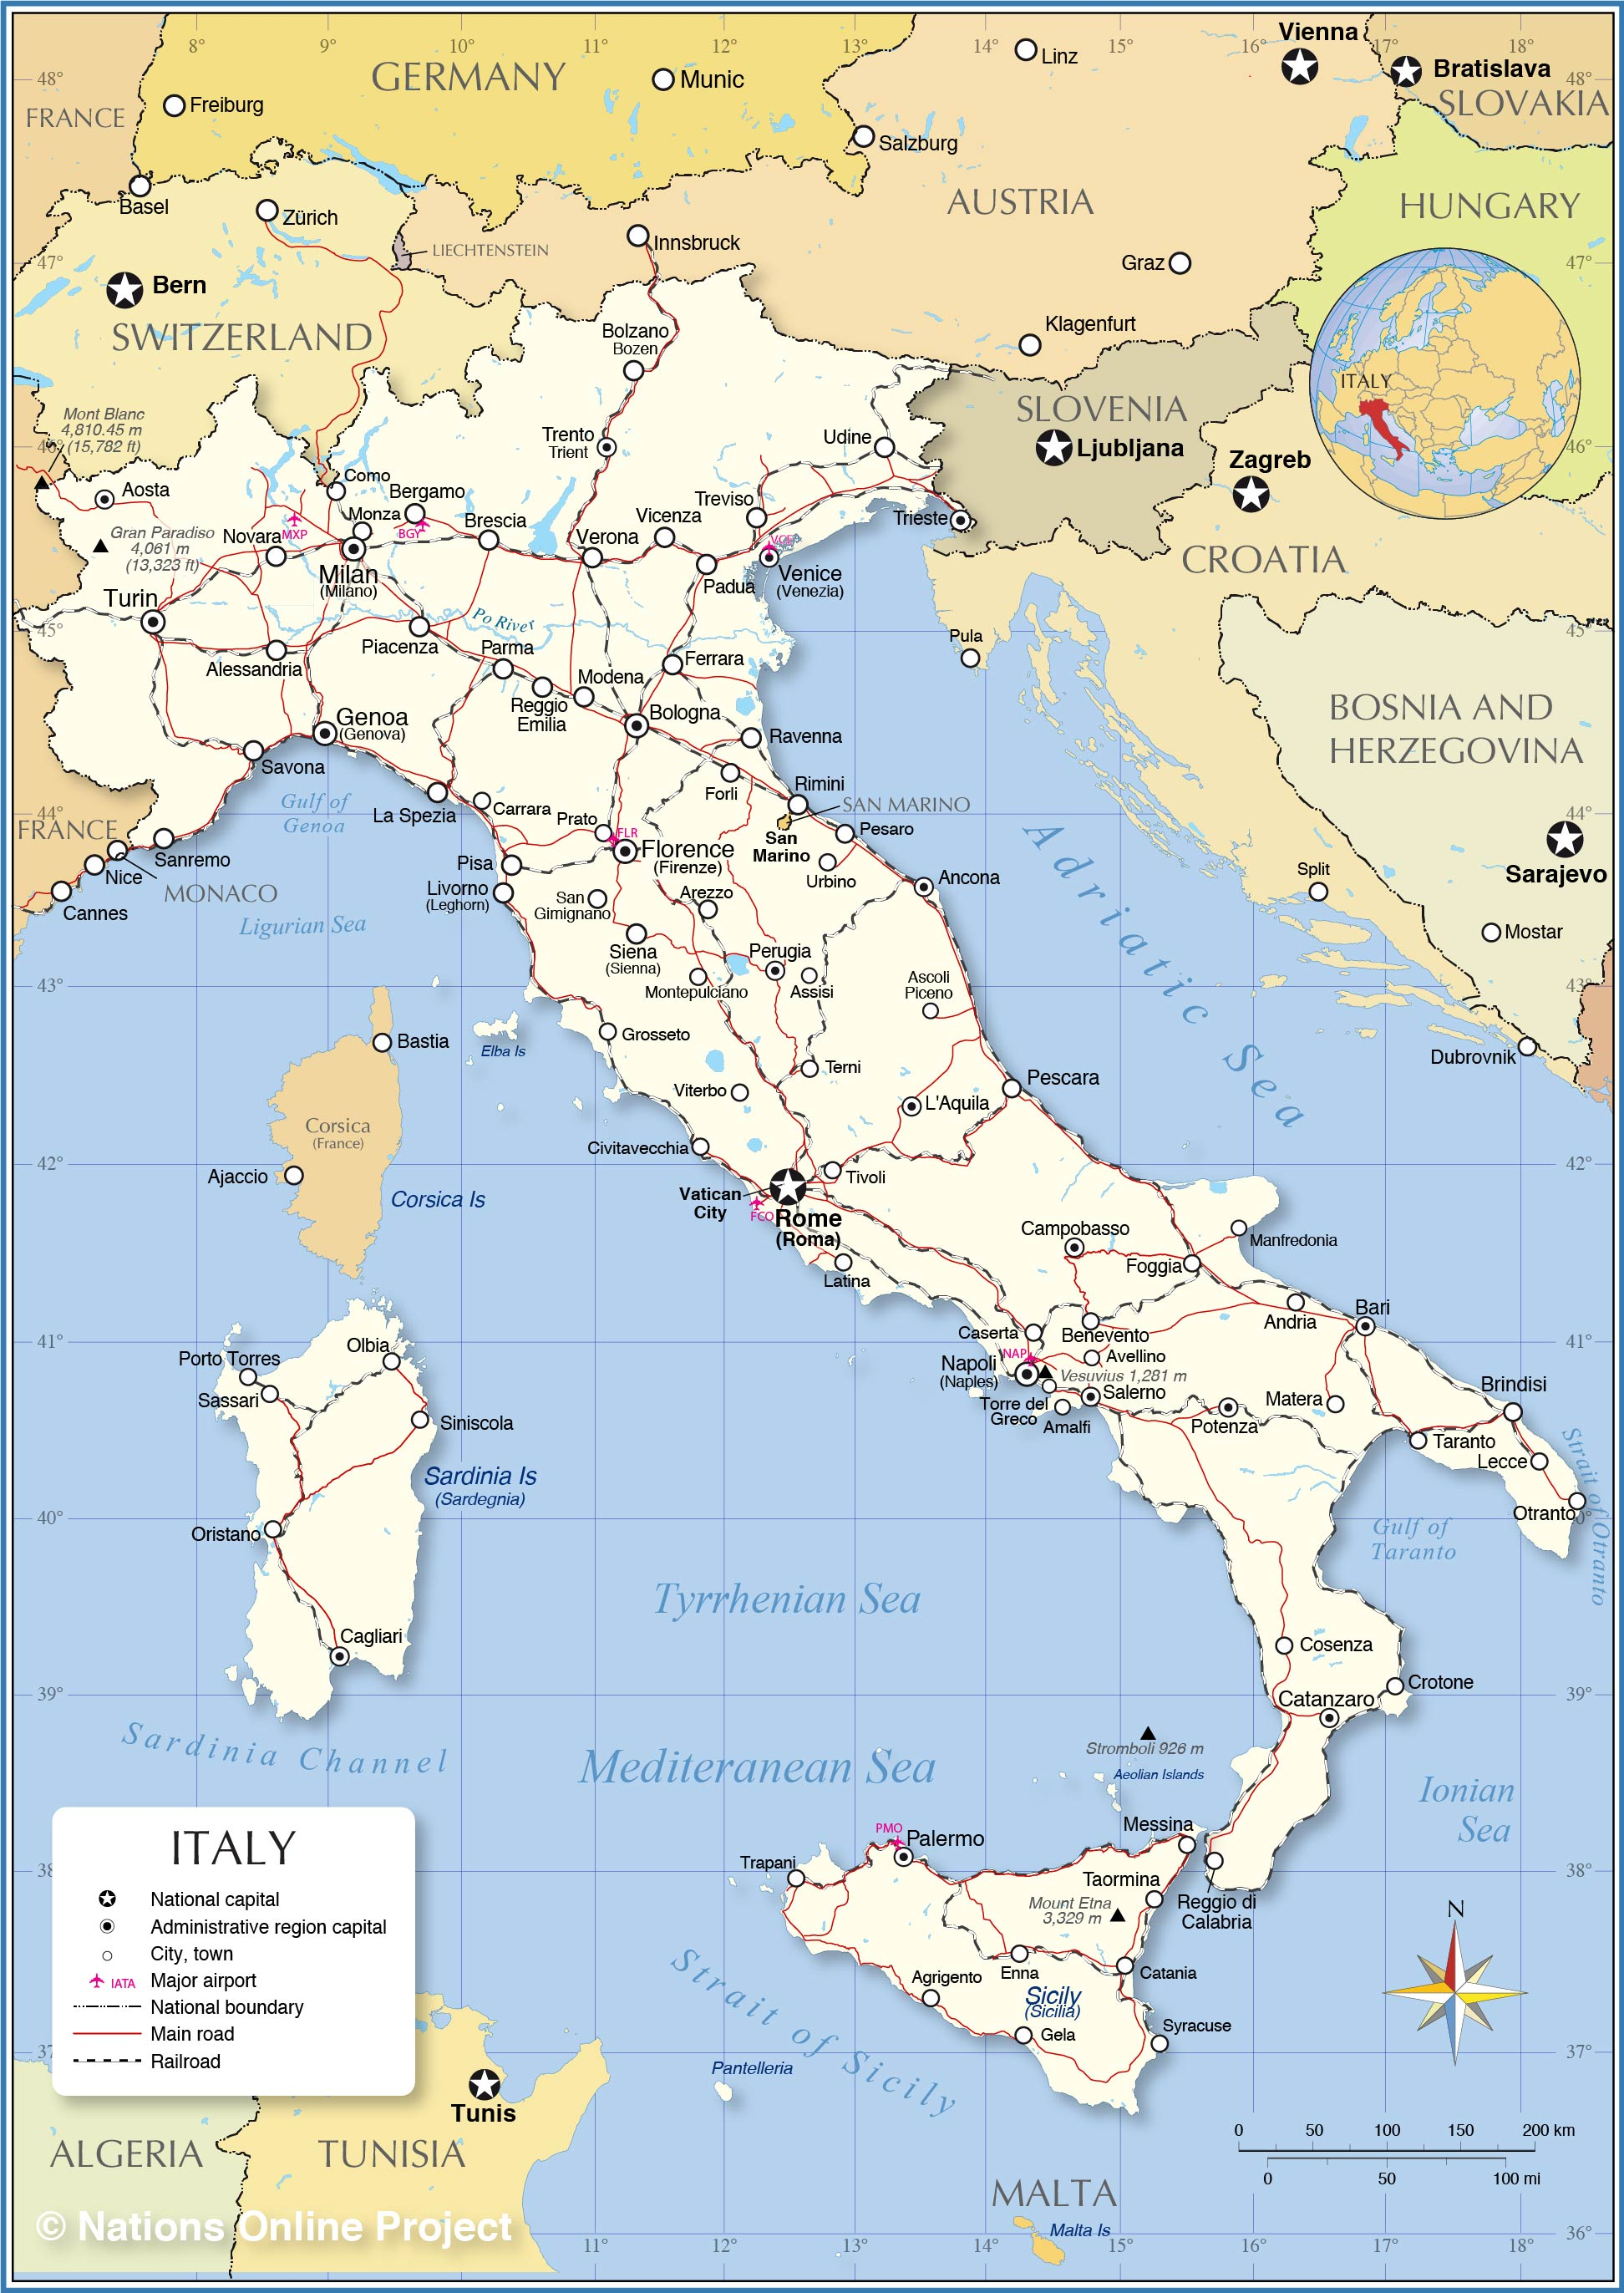 Map Of Italy Showing Pisa.Political Map Of Italy Nations Online Project